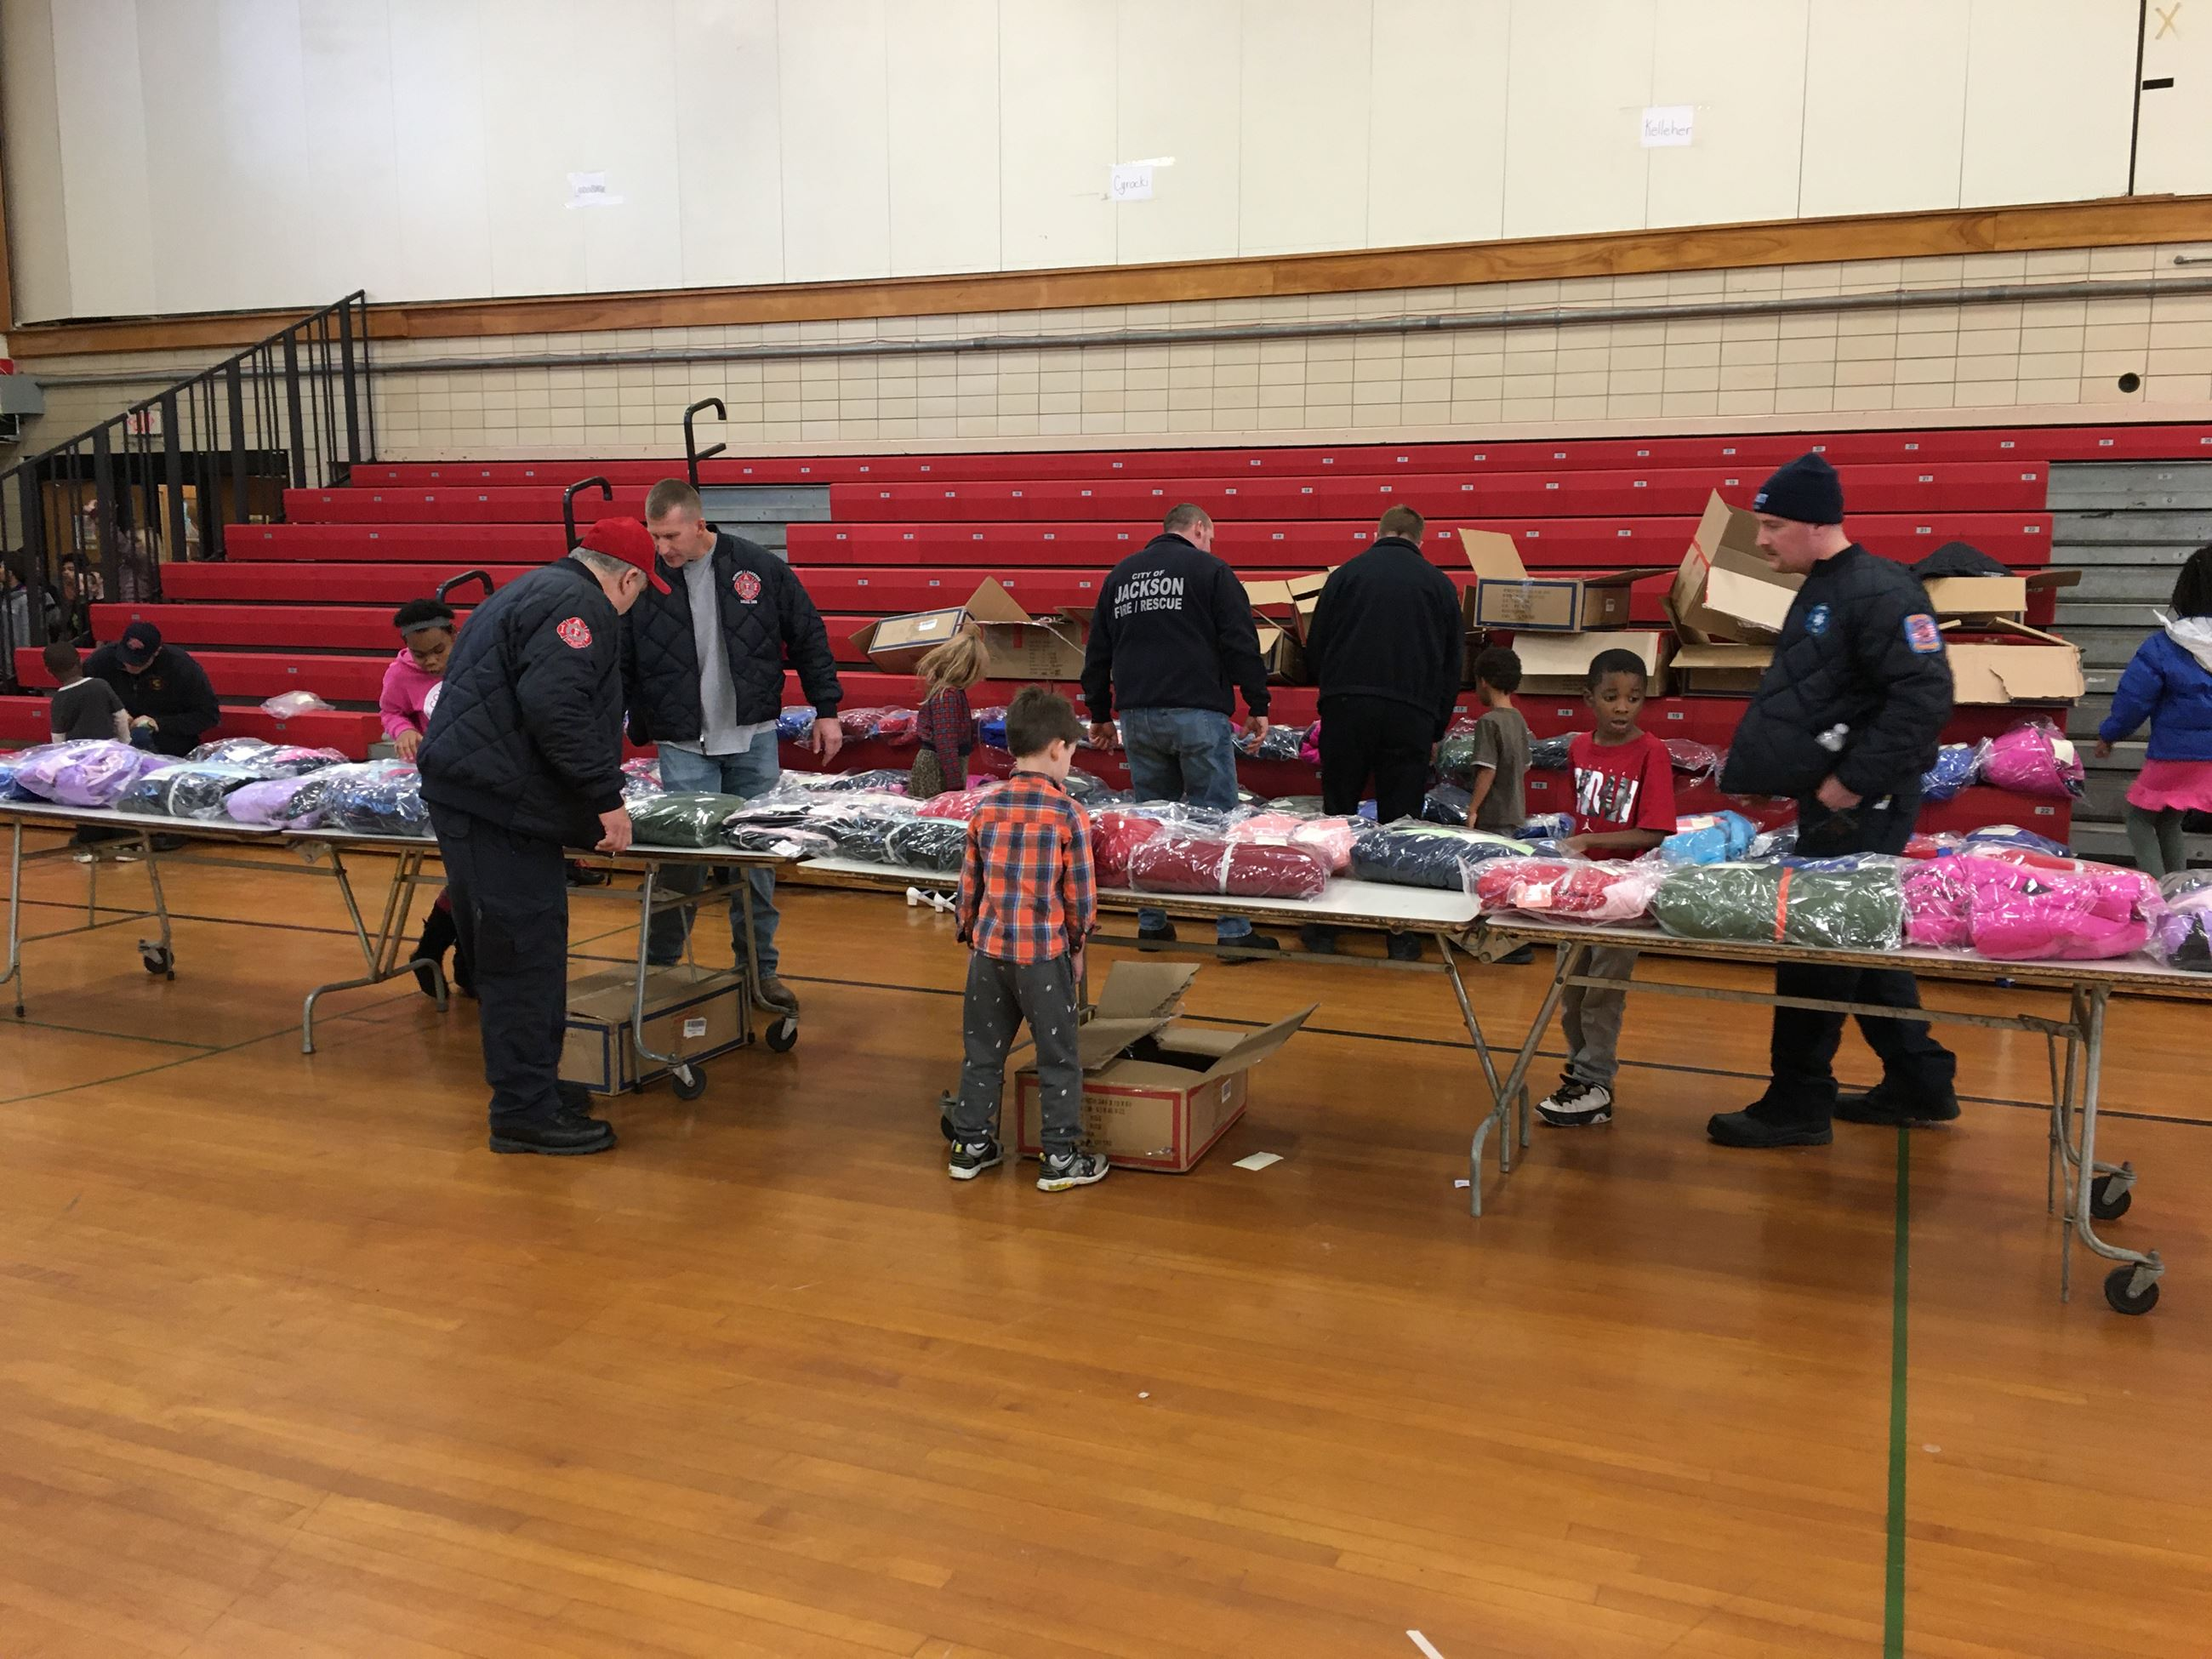 kids and firefighters look at coats on a table